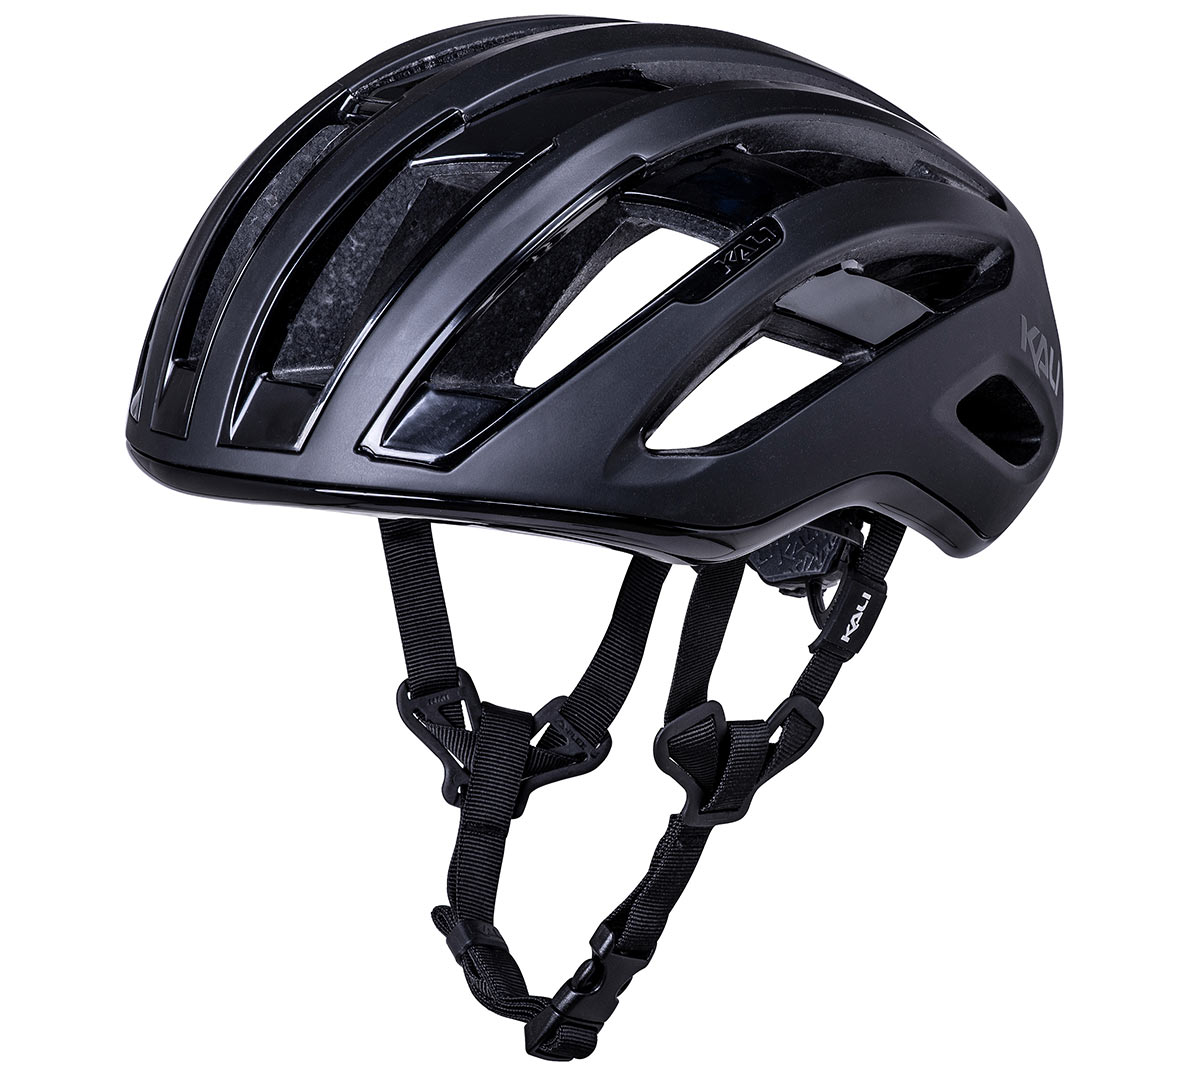 kali grit road and gravel bike helmet shown from side front angle